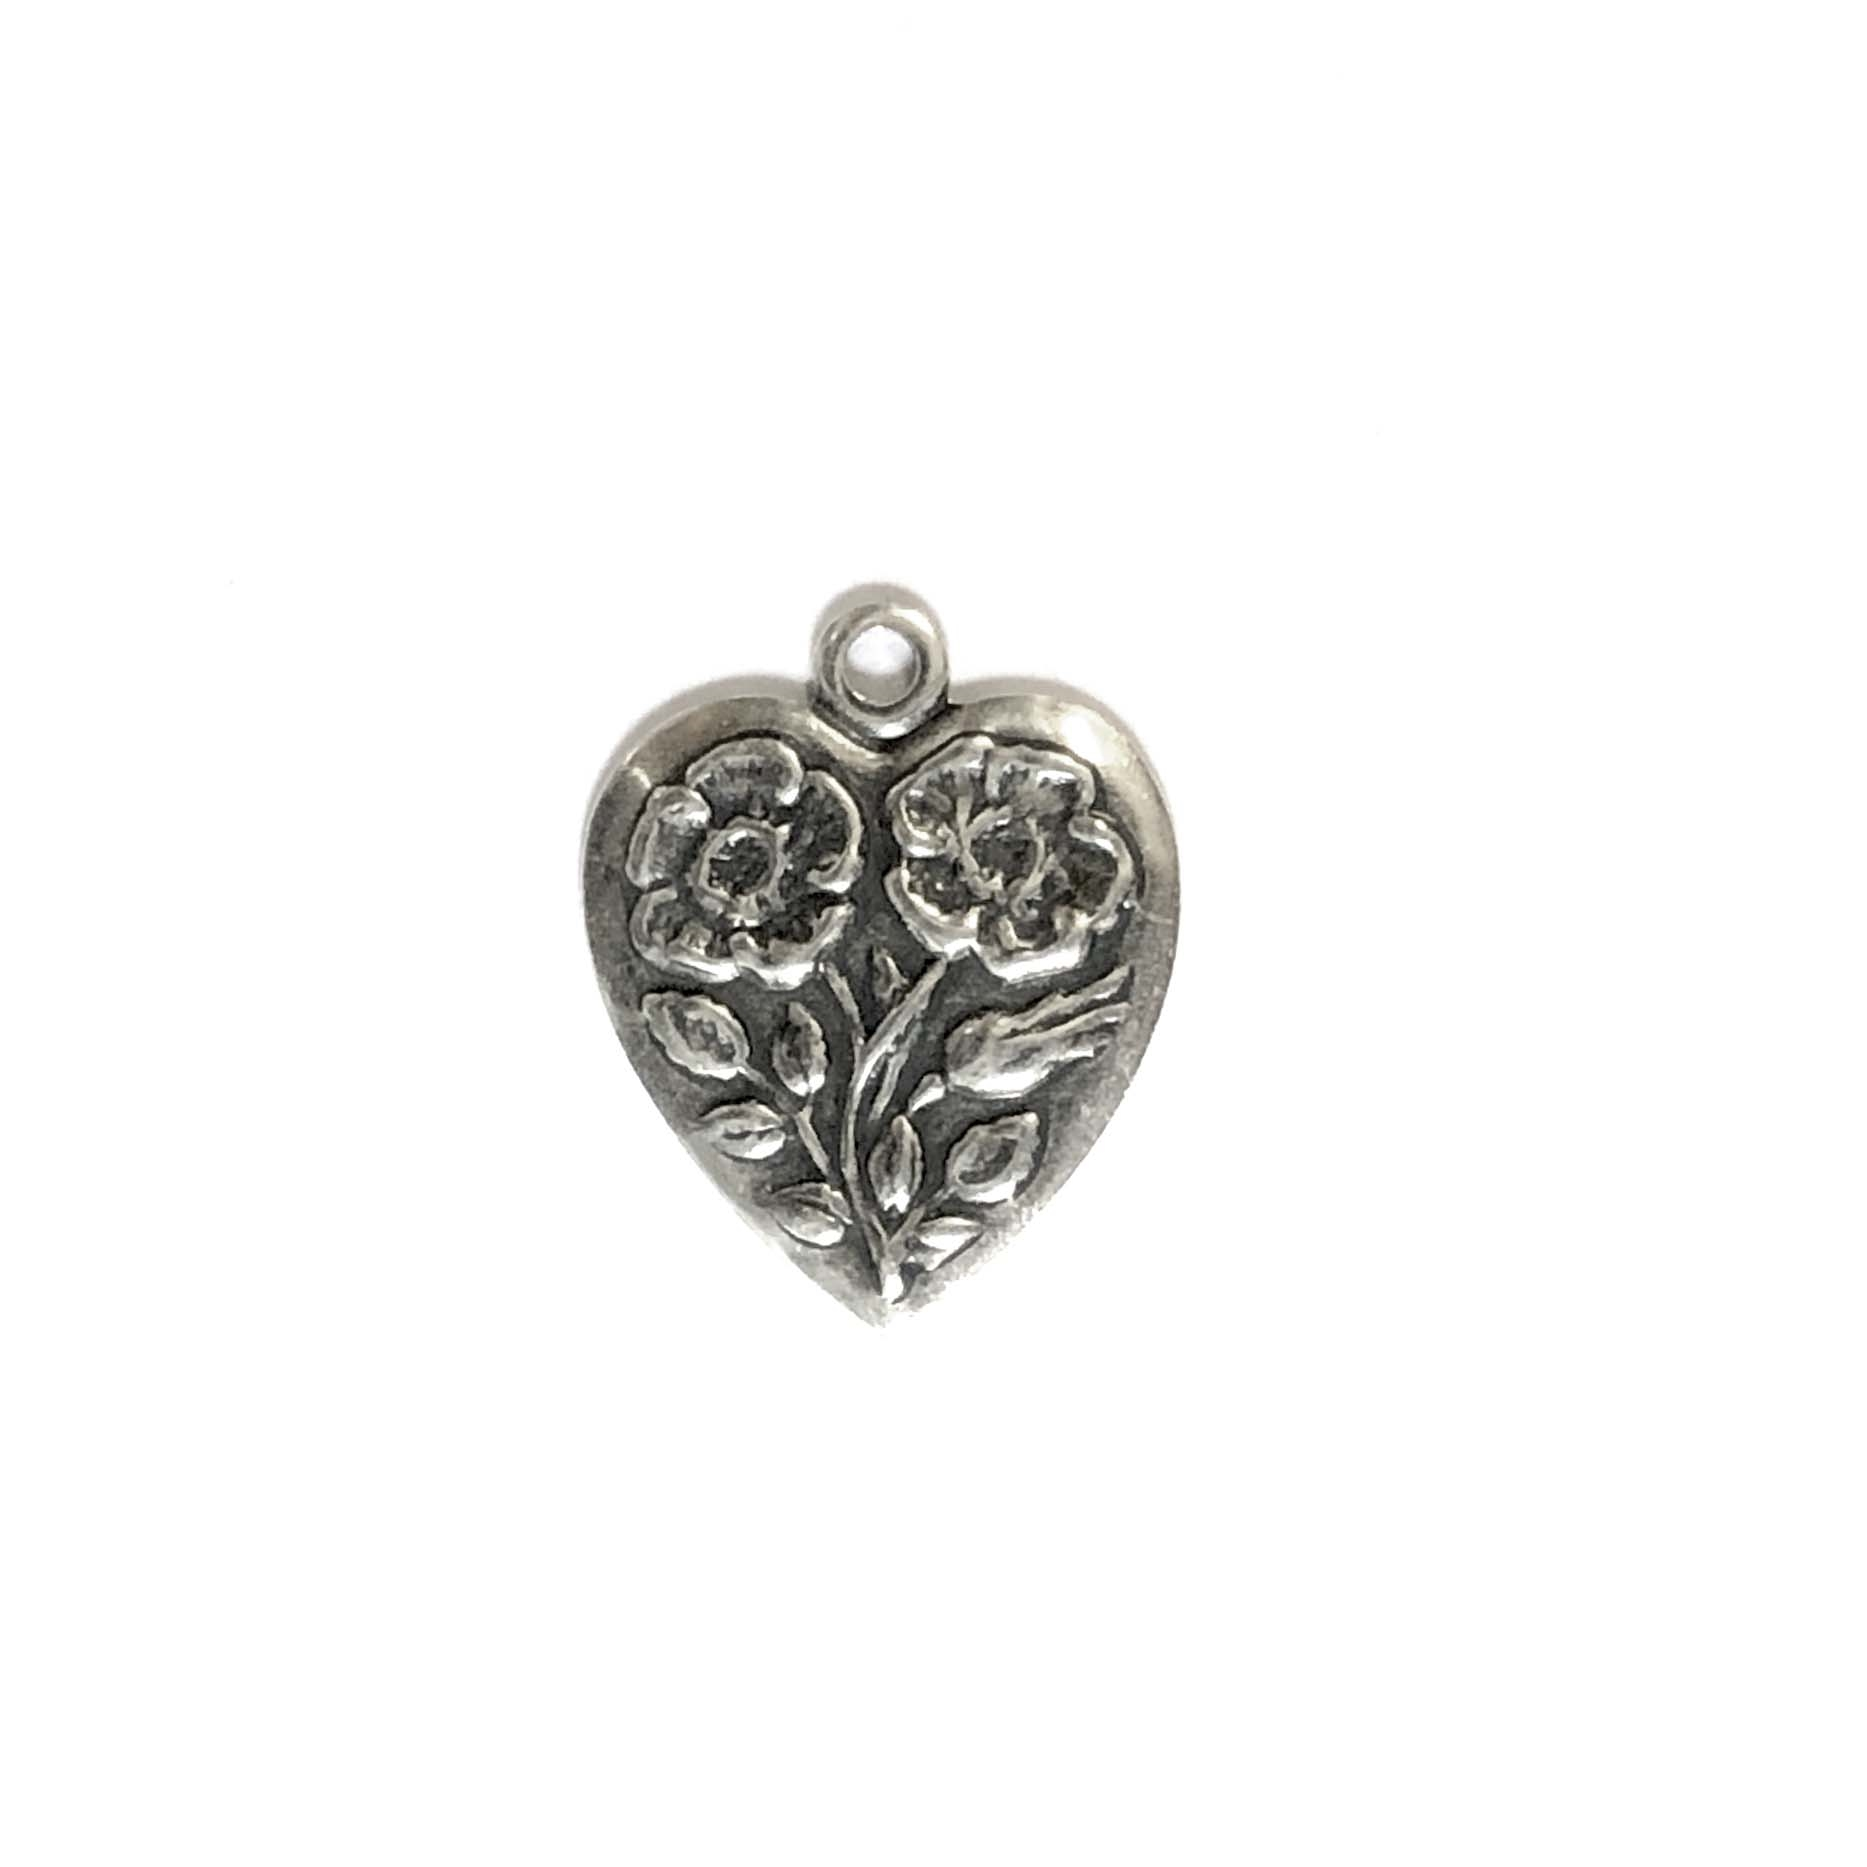 brass charms, heart charms, silverware silverplate, 07114, floral heart charms, antique silver, vintage jewelry supplies, brass jewelry parts, jewelry findings.